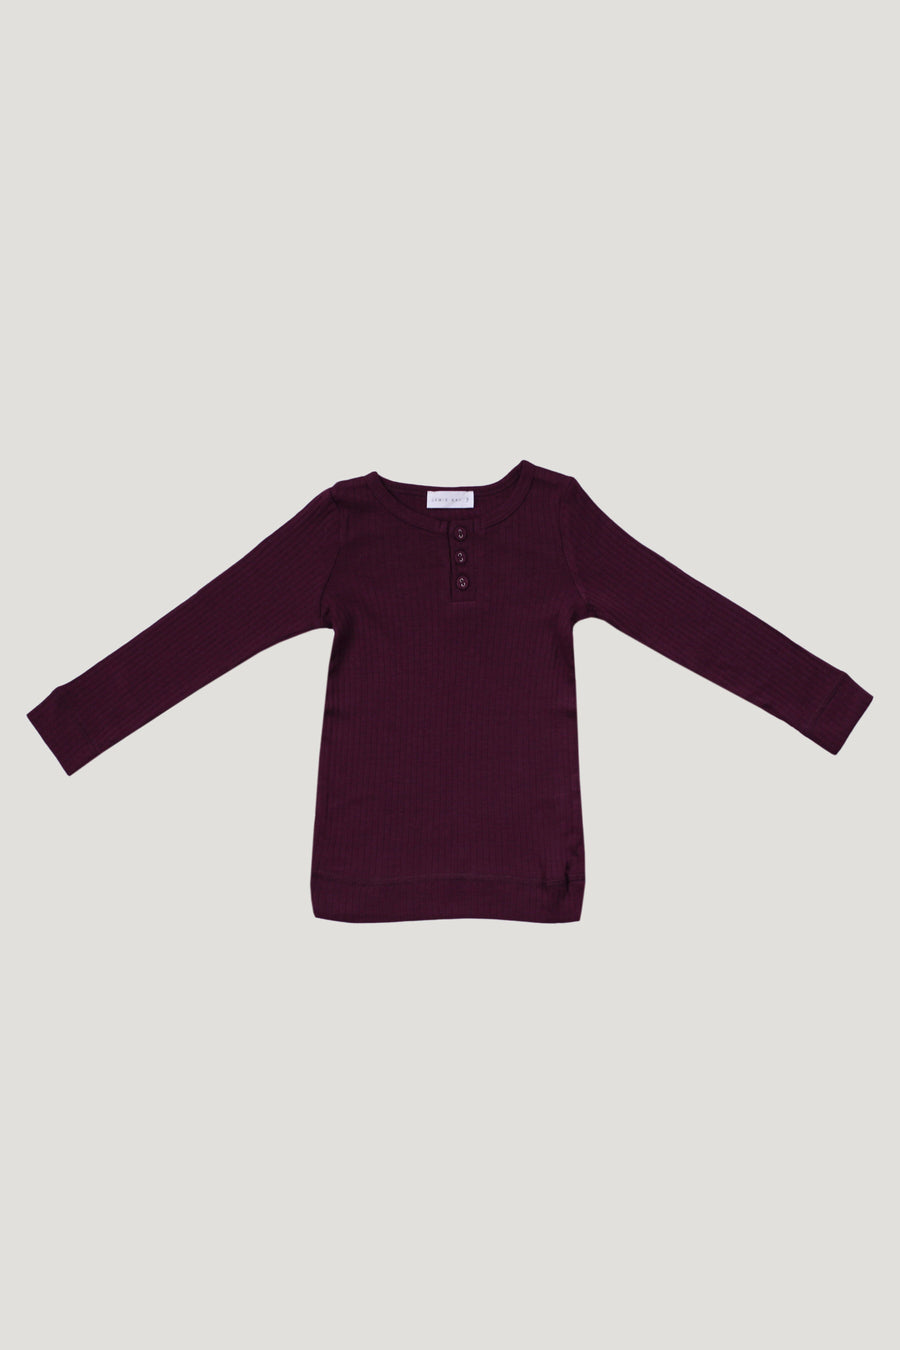 Jamie Kay - Cotton Modal Henley - Mulberry